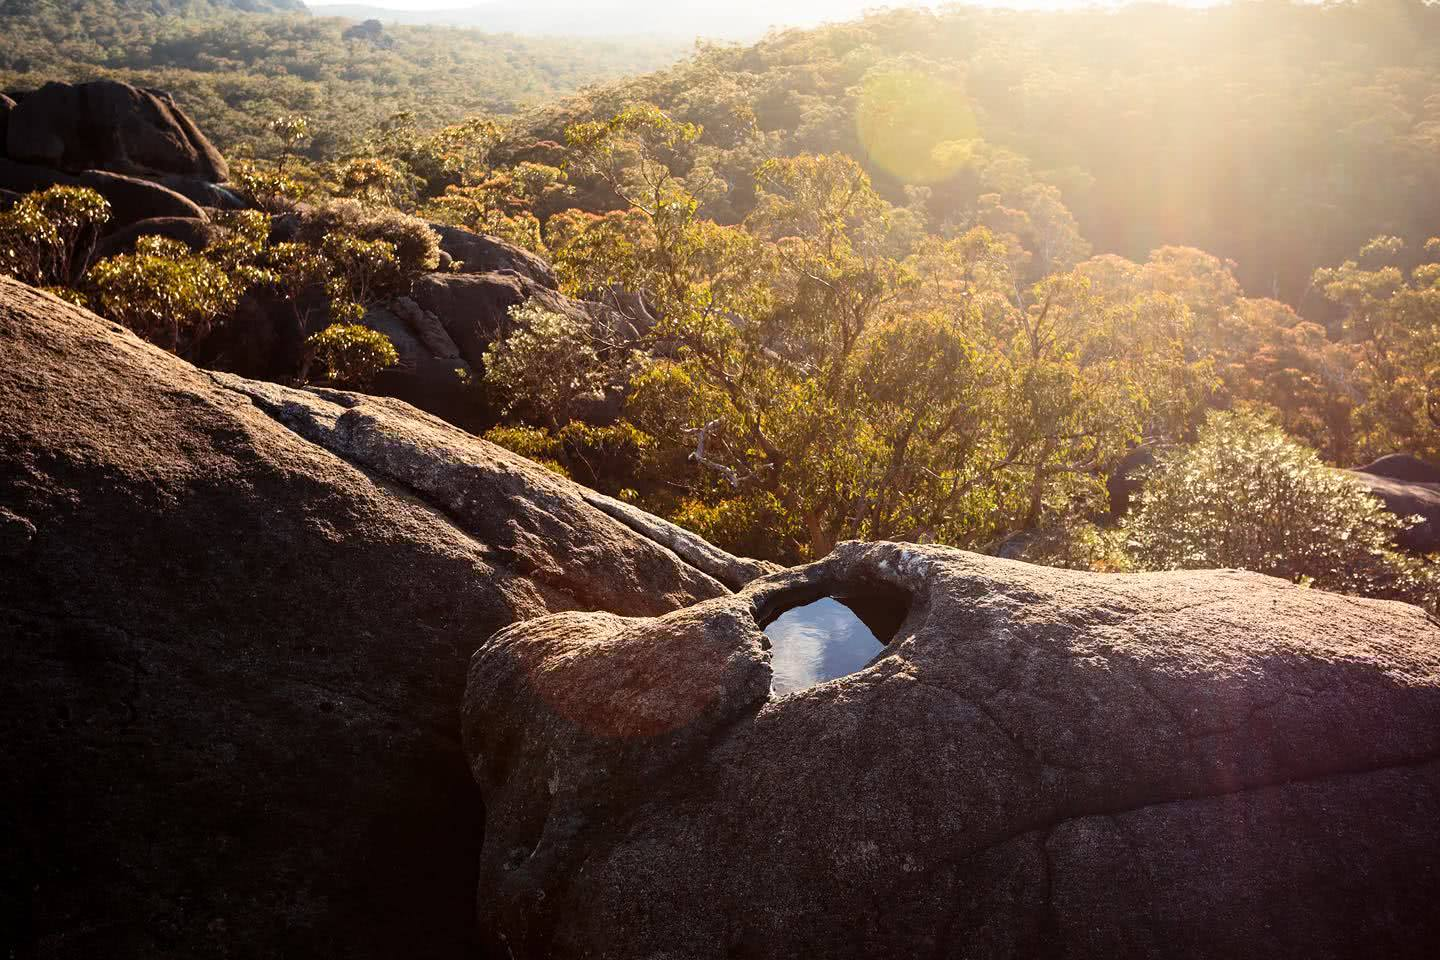 liam hardy, woolpack rocks, cathedral rocks national park, boulders, sunset, water, lens flare